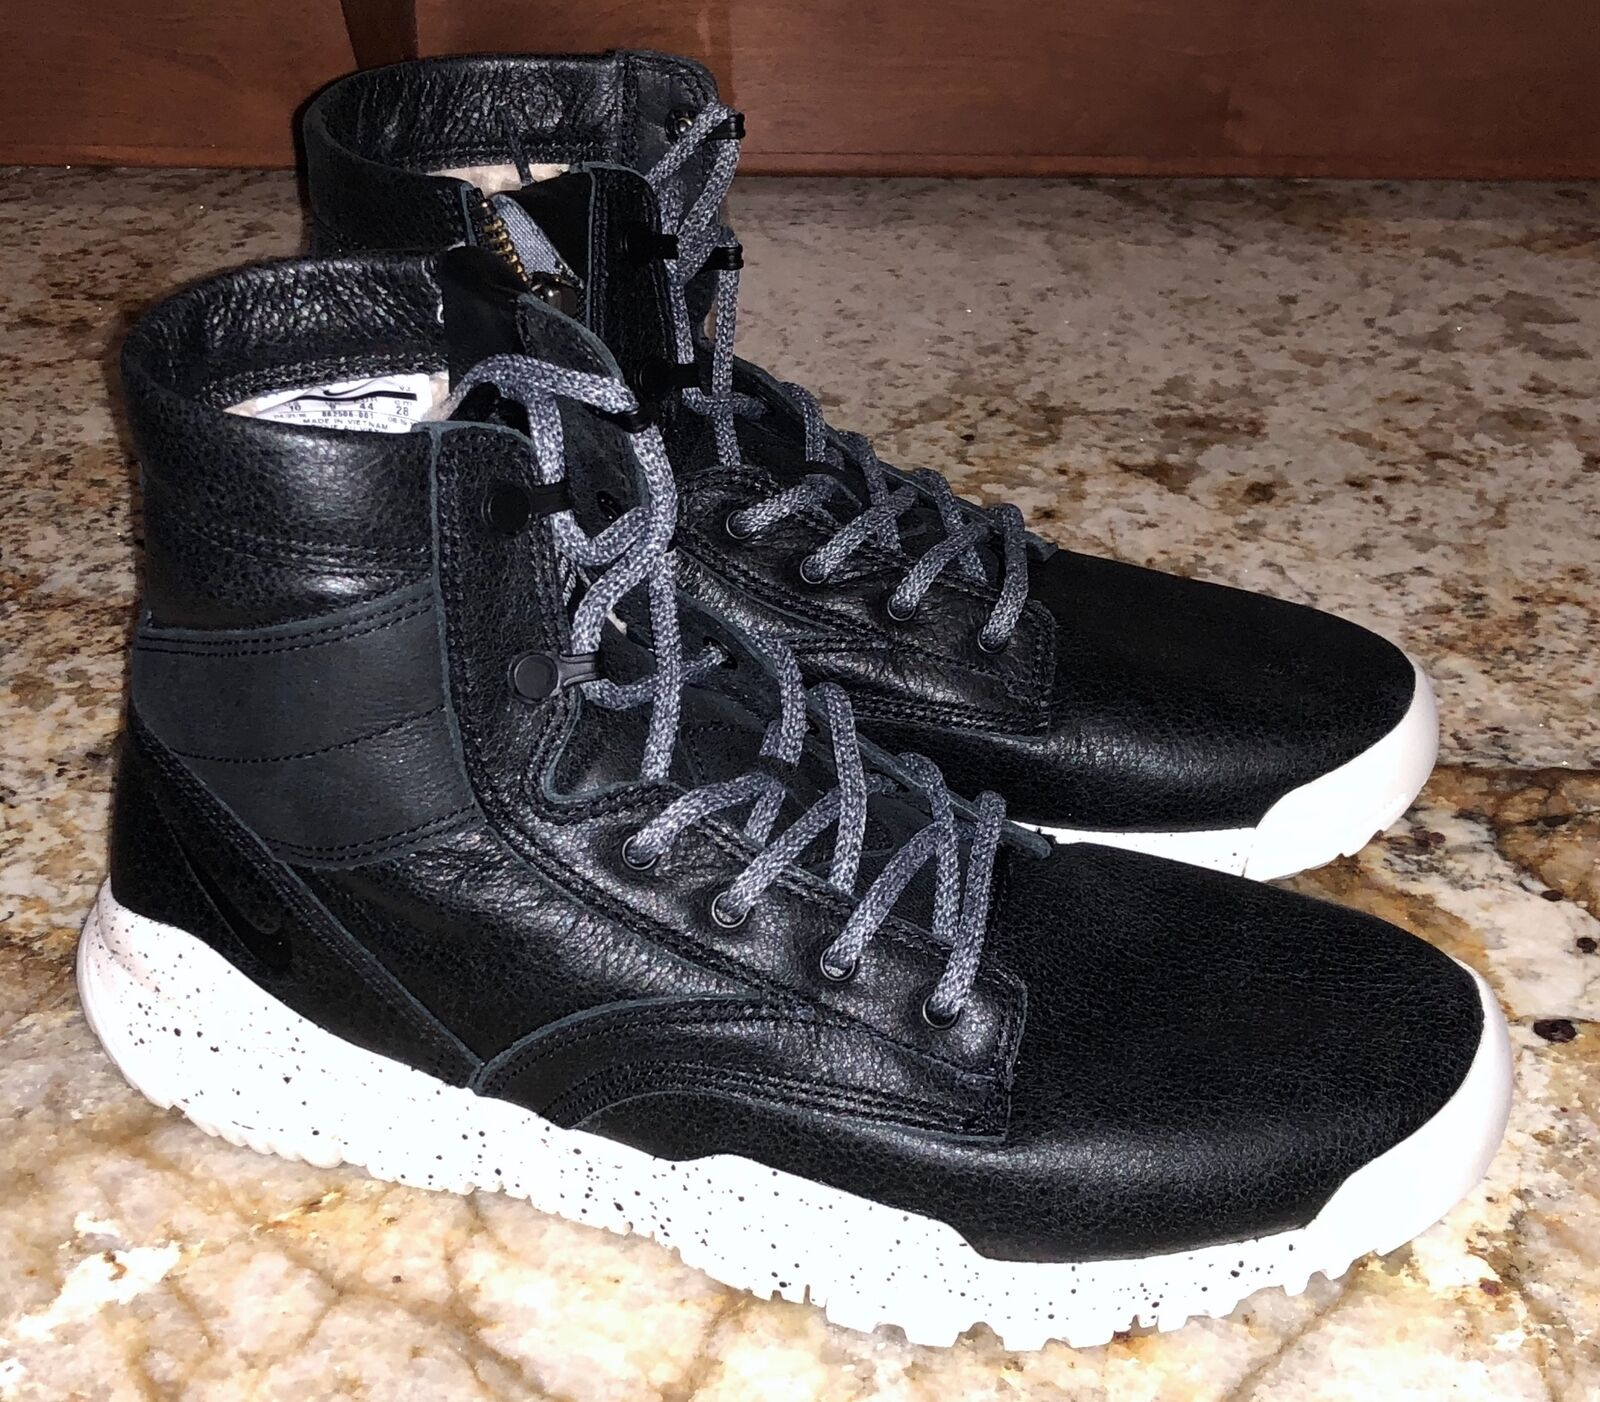 Nike SFB 6  NSW Bomber Fur Lined Black Sneakerboots shoes NEW Mens Sz 10